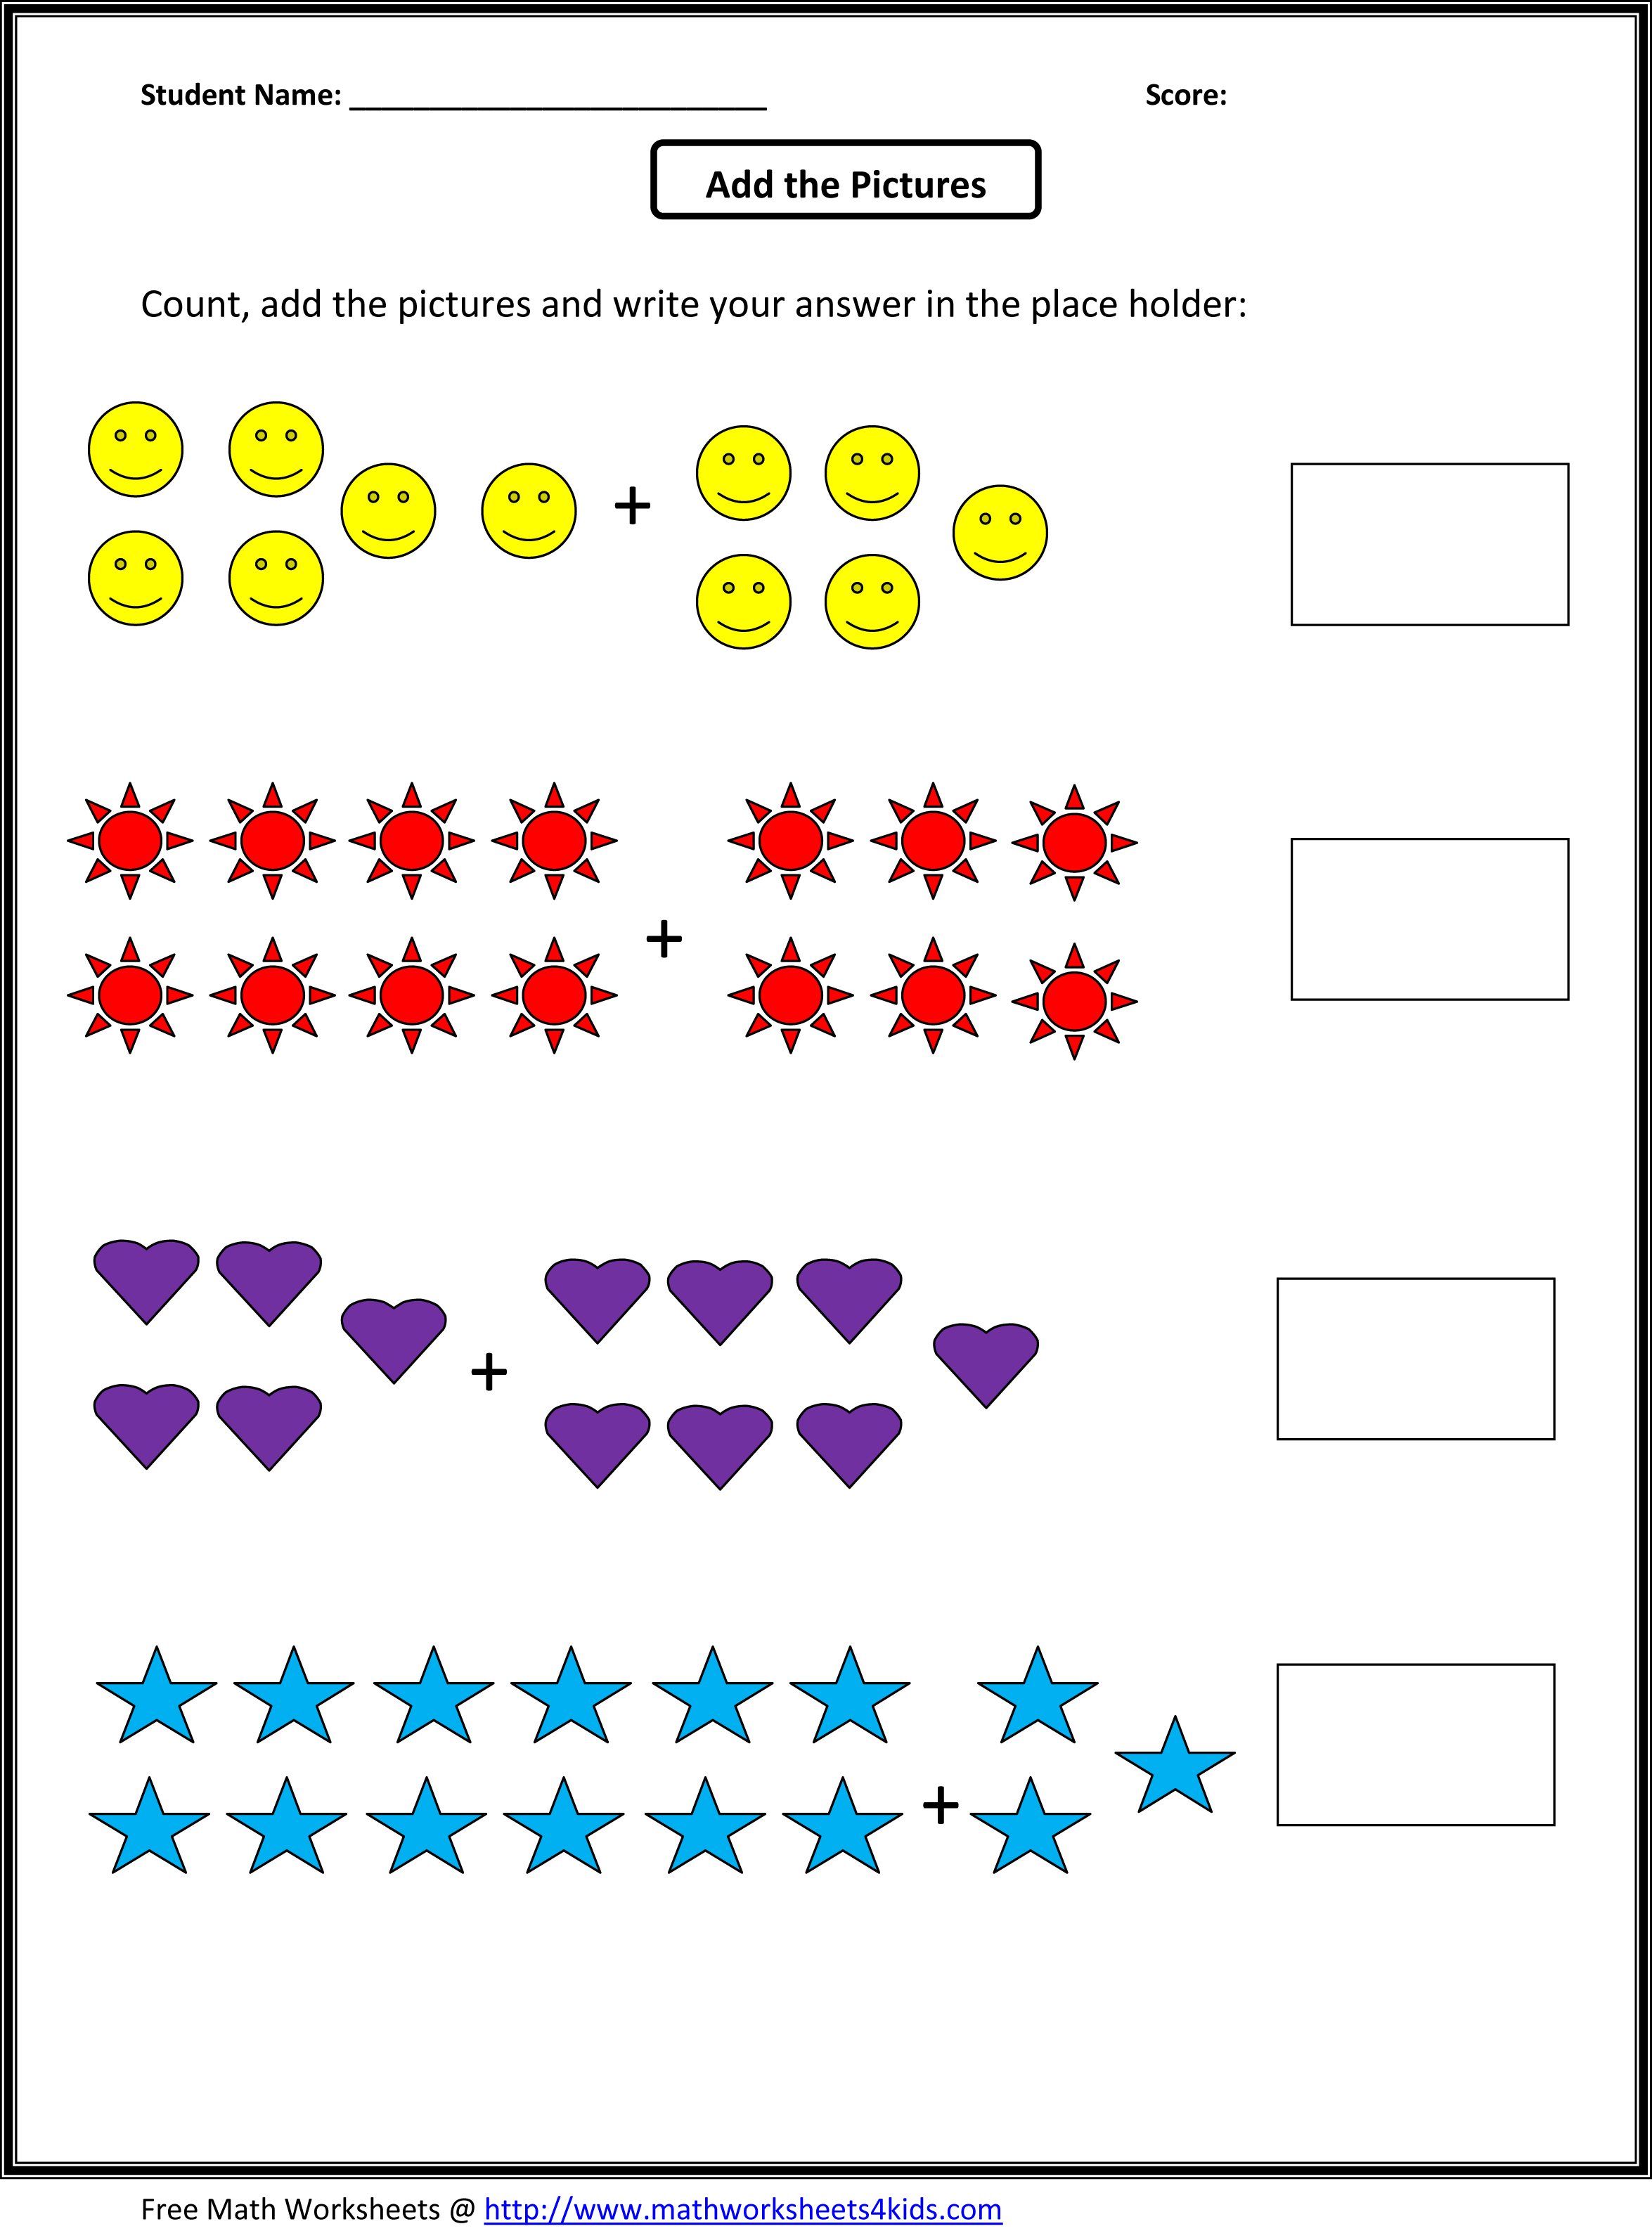 Aldiablosus  Splendid Grade  Maths Worksheet  Reocurent With Foxy Math Worksheets For St Grade Free  Reocurent With Cute Sense Of Sight Worksheets Also Writing For First Grade Worksheets In Addition Free Th Grade Reading Comprehension Worksheets And Math Worksheet Second Grade As Well As Download Budget Worksheet Additionally Tools Of Science Worksheet From Reocurentcom With Aldiablosus  Foxy Grade  Maths Worksheet  Reocurent With Cute Math Worksheets For St Grade Free  Reocurent And Splendid Sense Of Sight Worksheets Also Writing For First Grade Worksheets In Addition Free Th Grade Reading Comprehension Worksheets From Reocurentcom